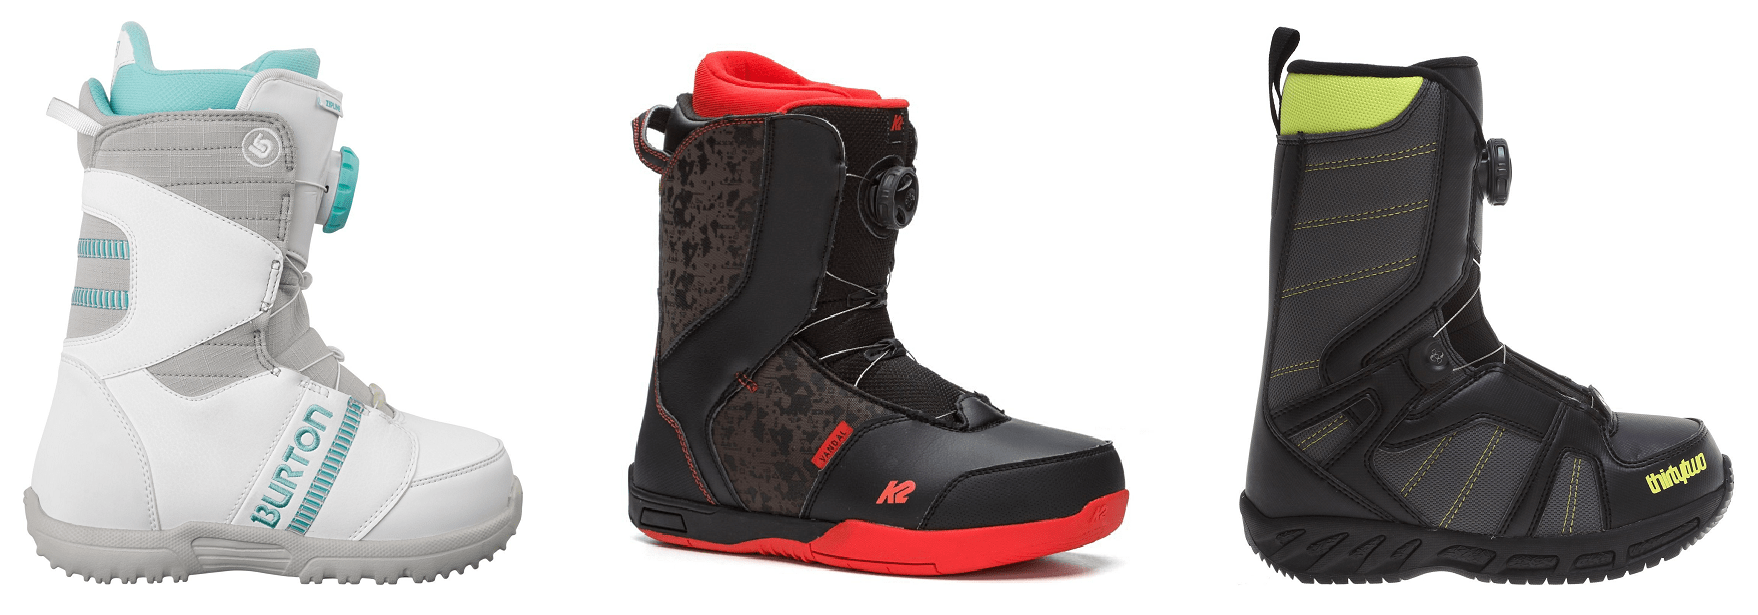 Best Kids Snowboard Boots